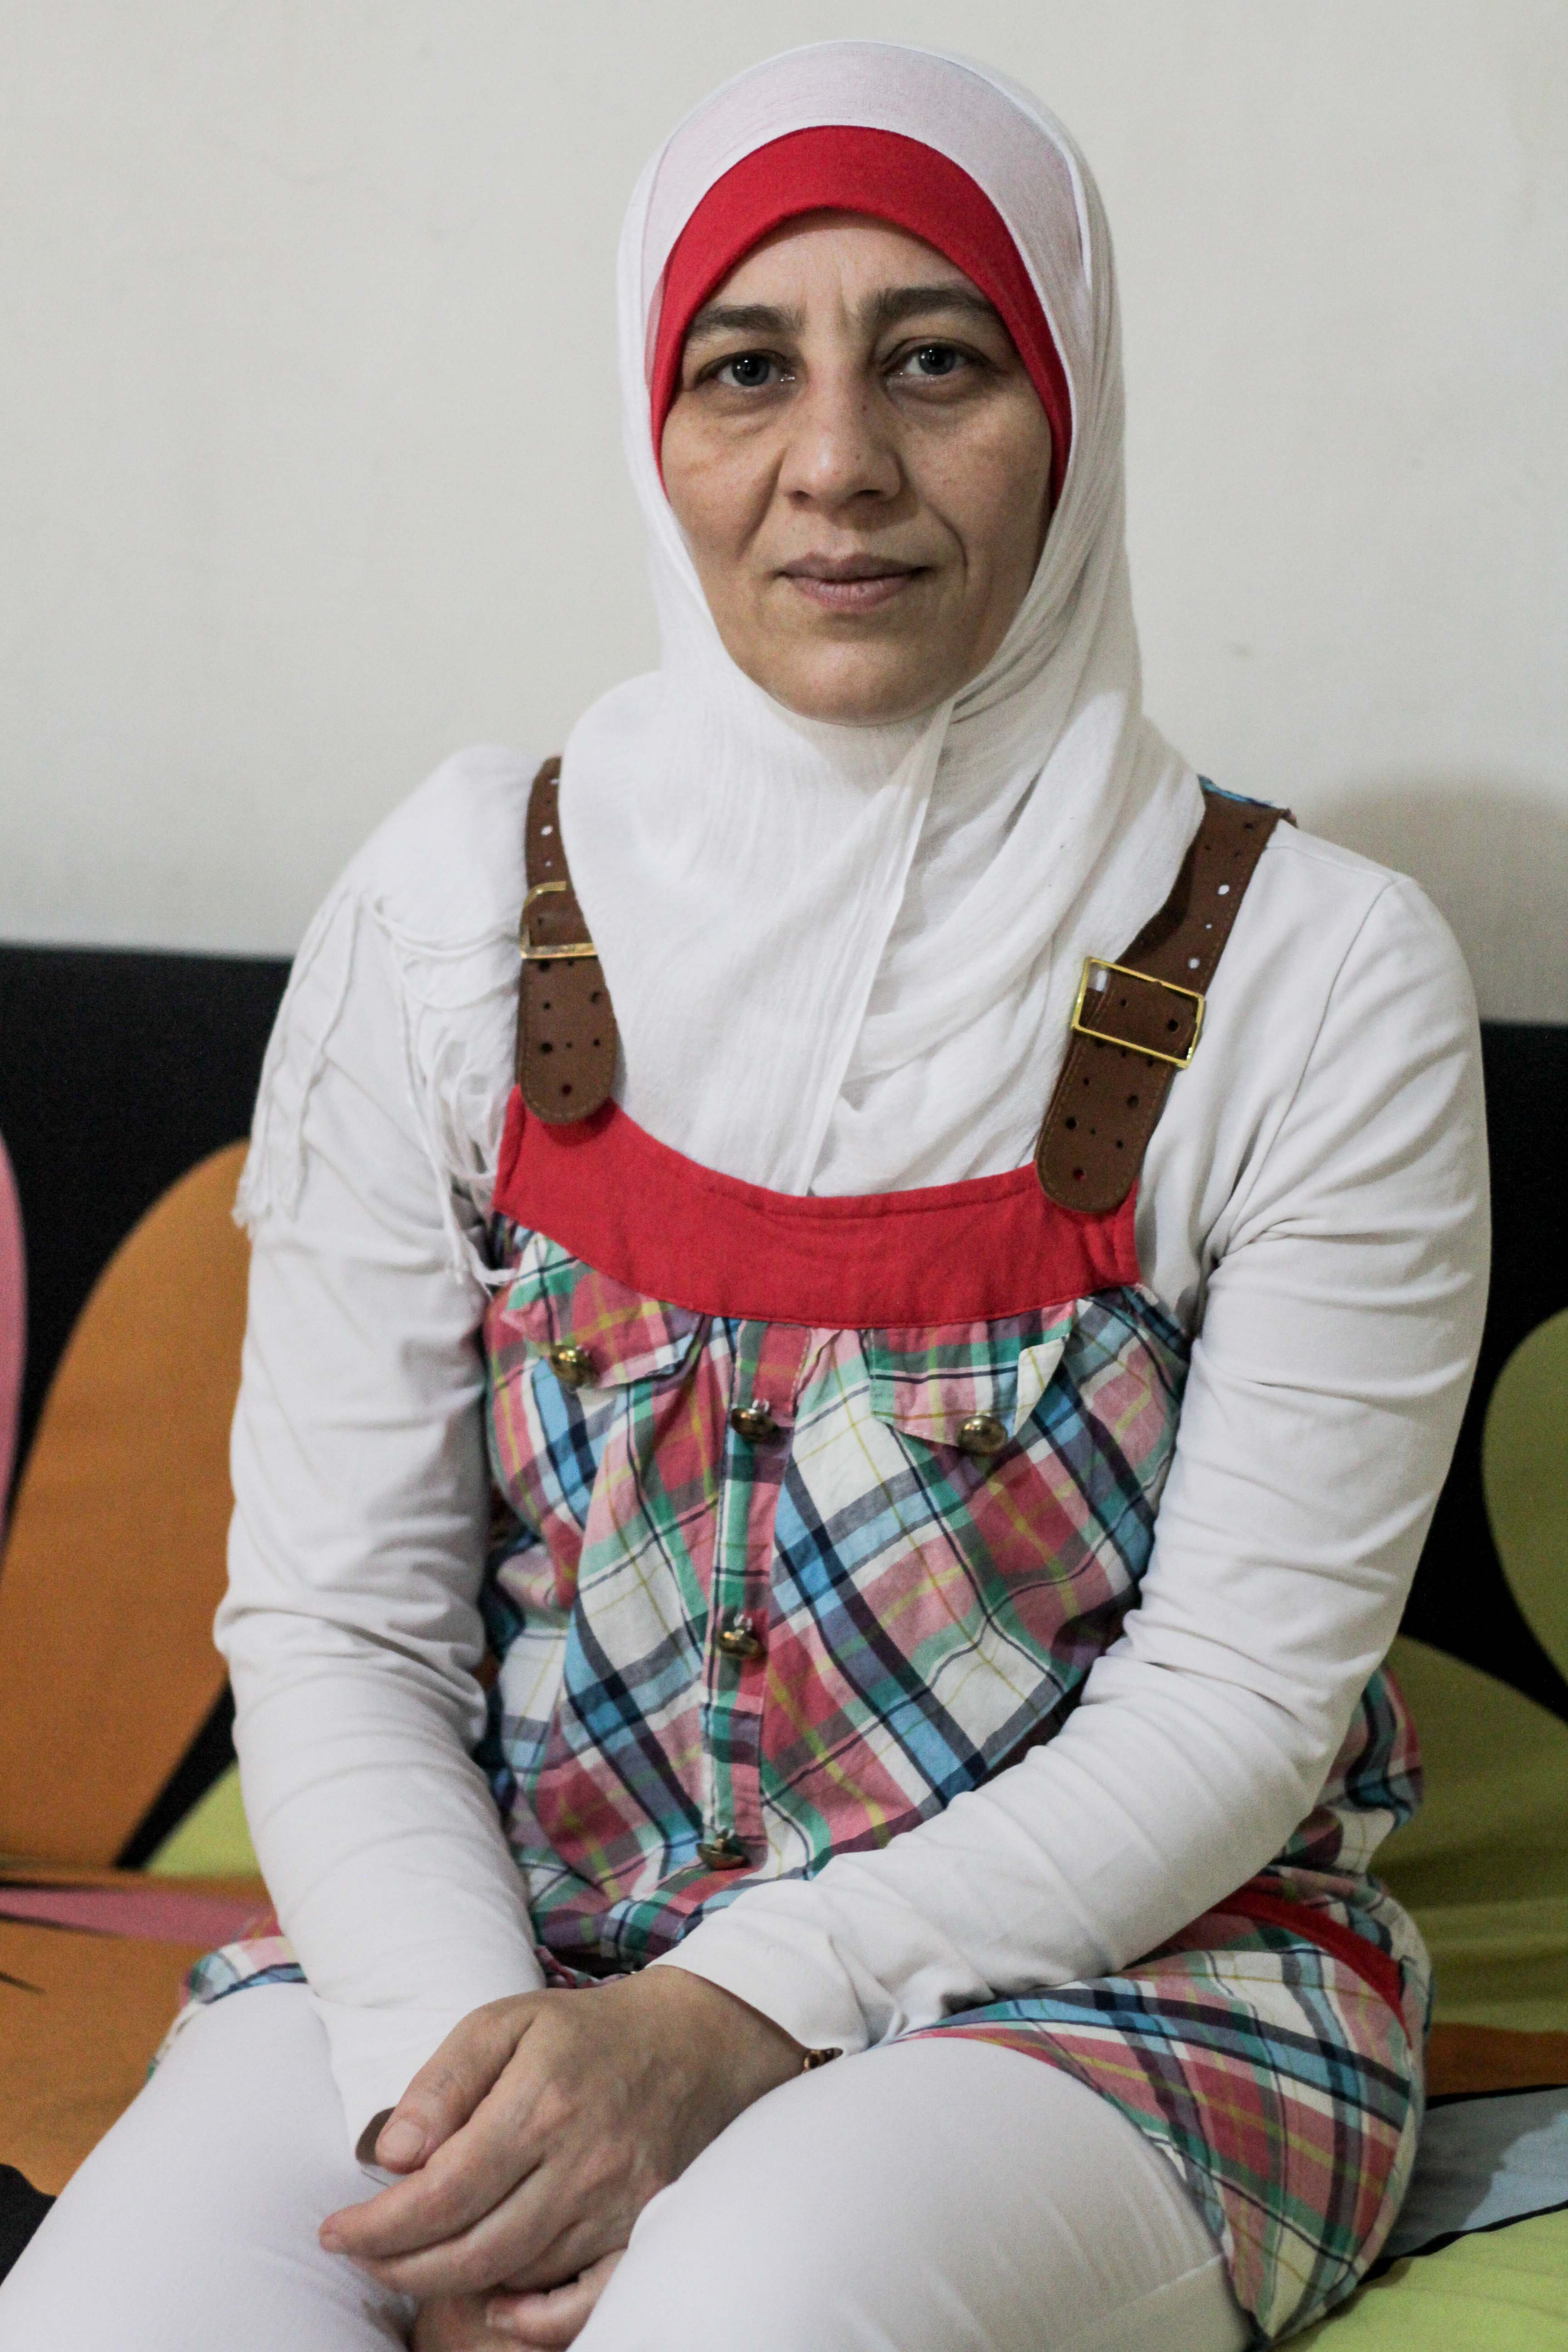 After four years of having her son rejected from Lebanese schools, Nidal's mother Hasiba hopes he and his two siblings can now enter full-time education, Beirut, Lebanon, Sept. 17, 2015. (VOA / J. Owens)